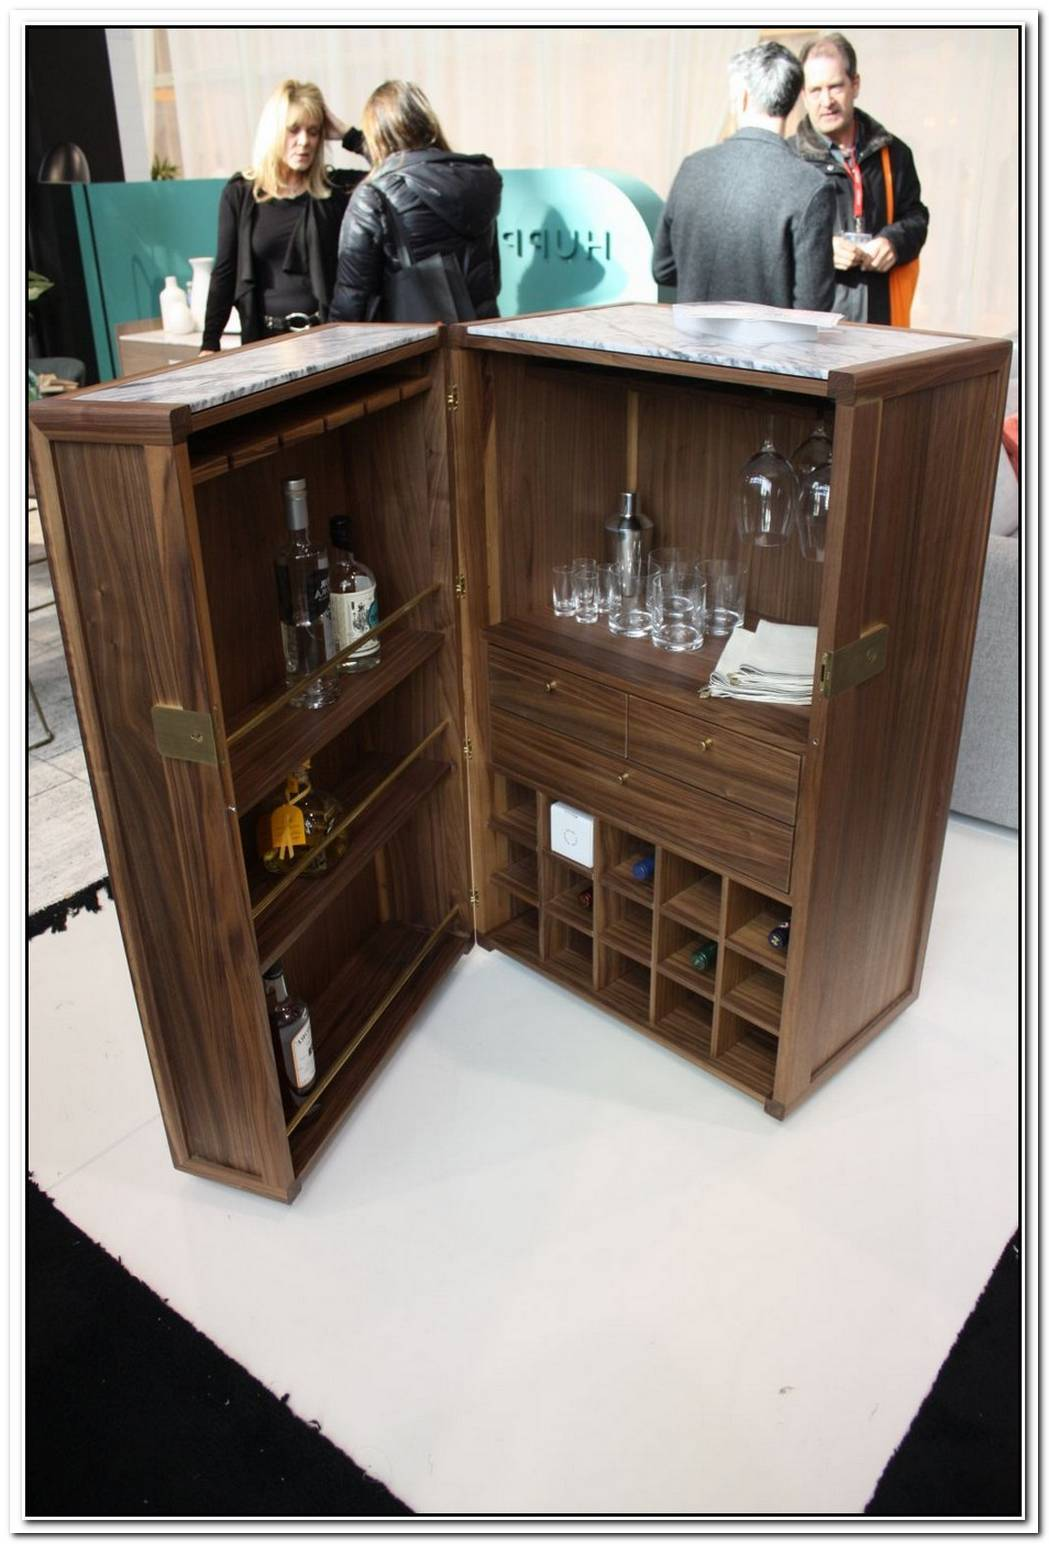 Stylish Credenza Bar Units Every Sophisticated Living Room Needs